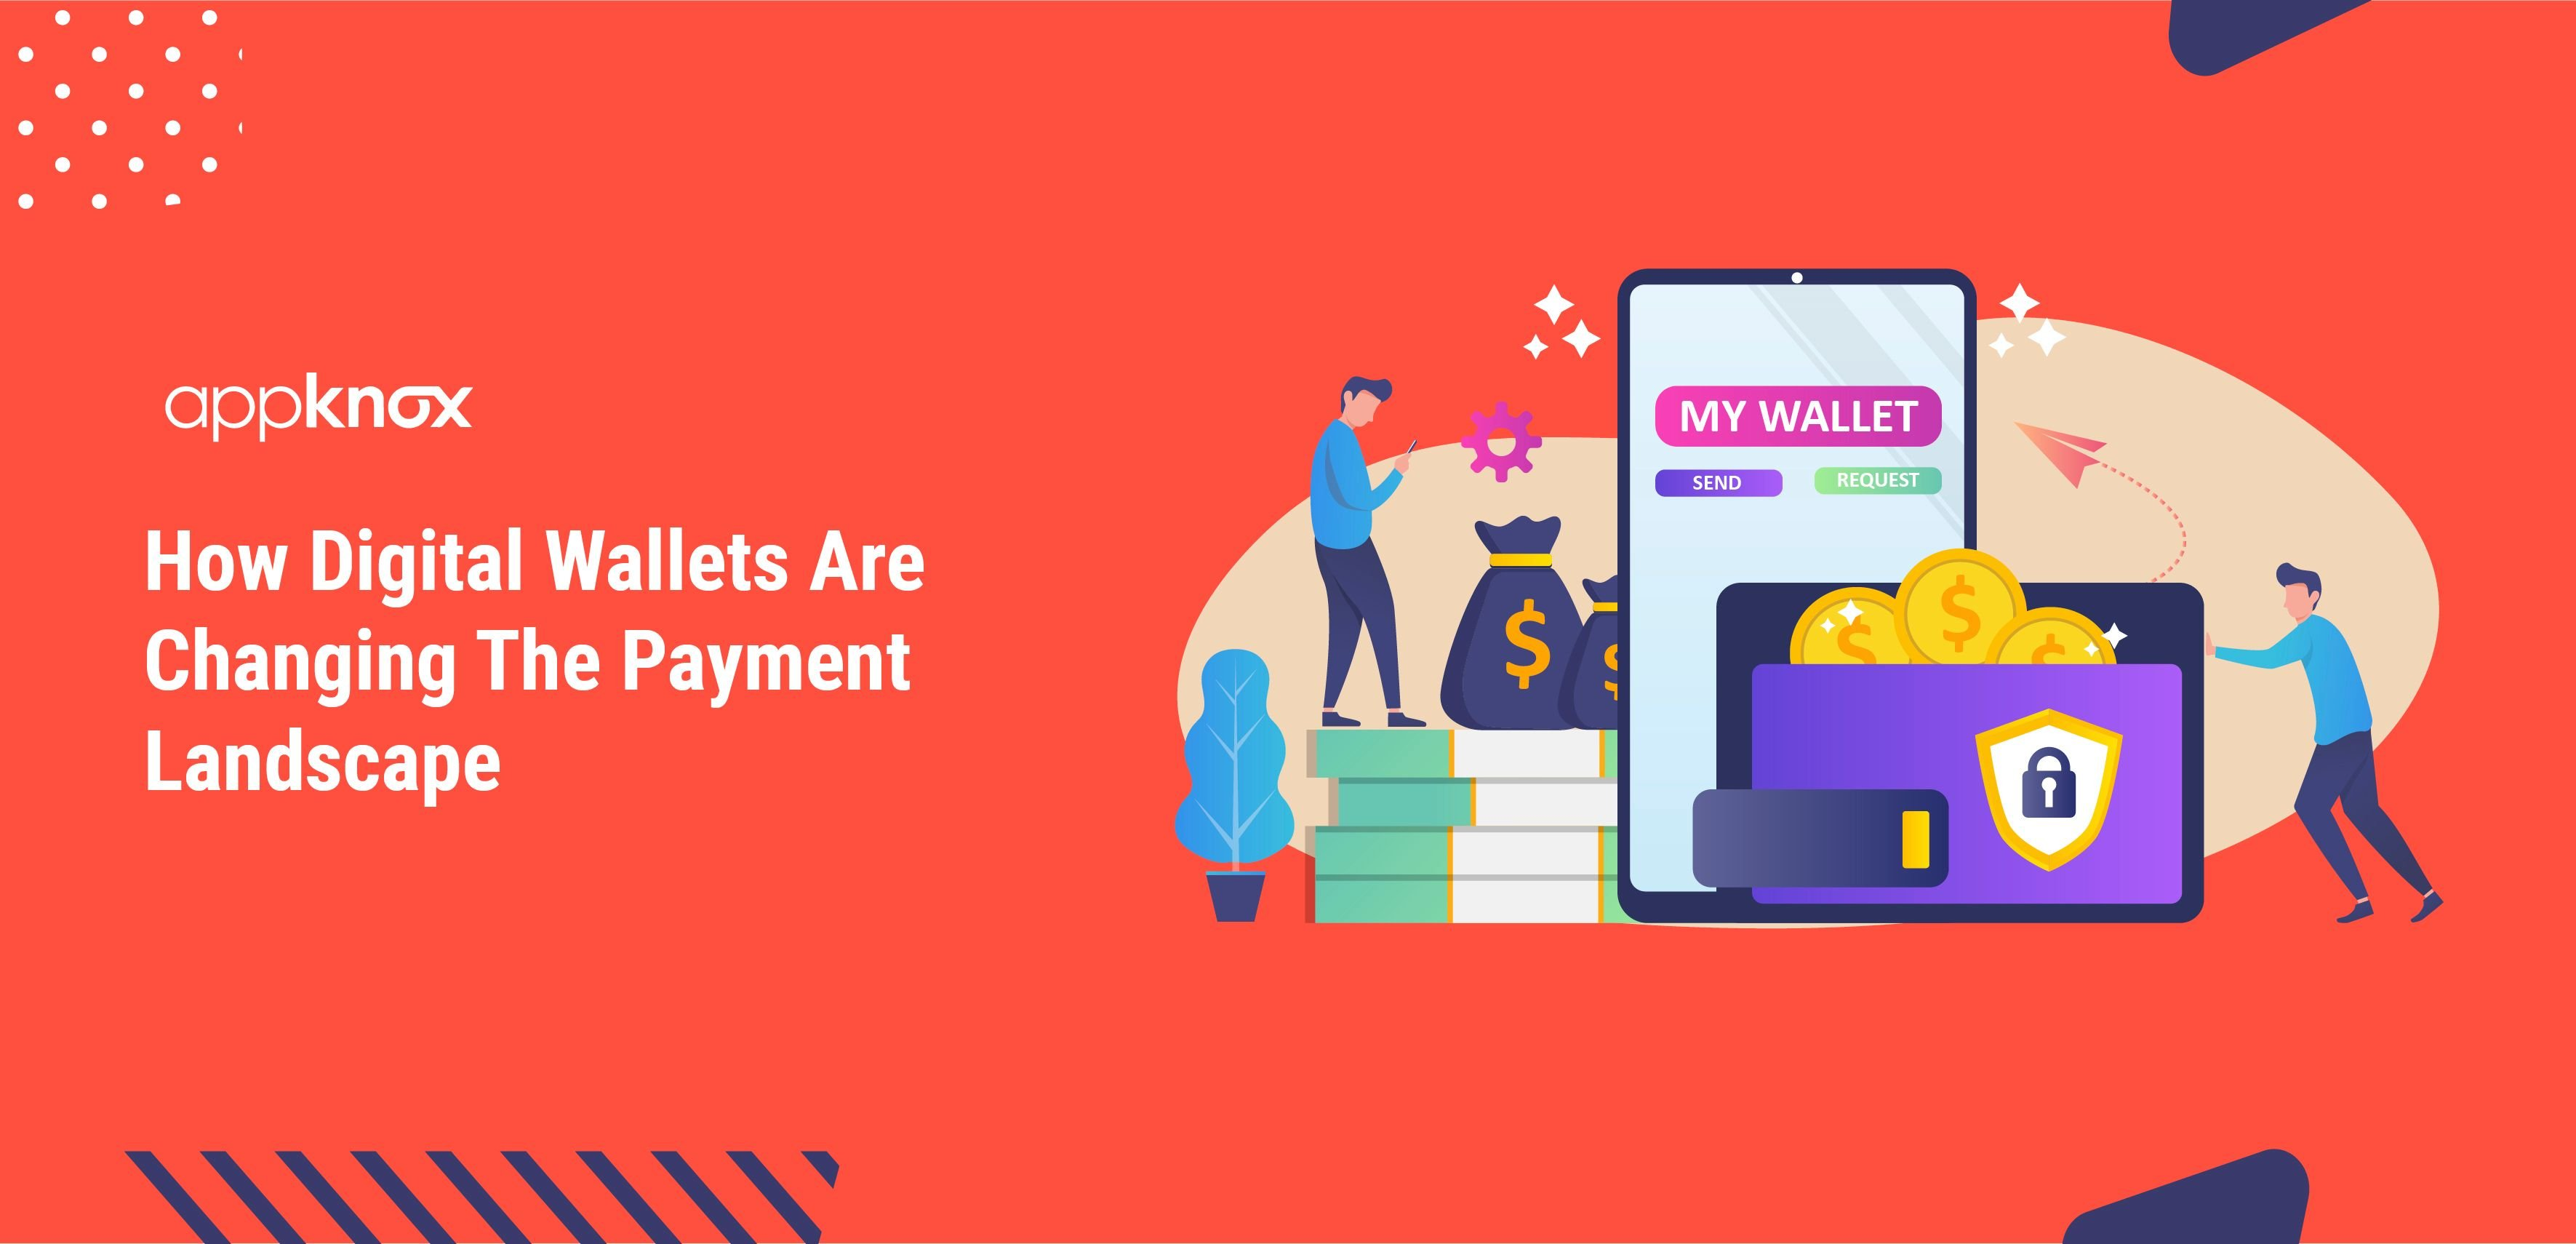 How Digital Wallets Are Changing The Payment Landscape